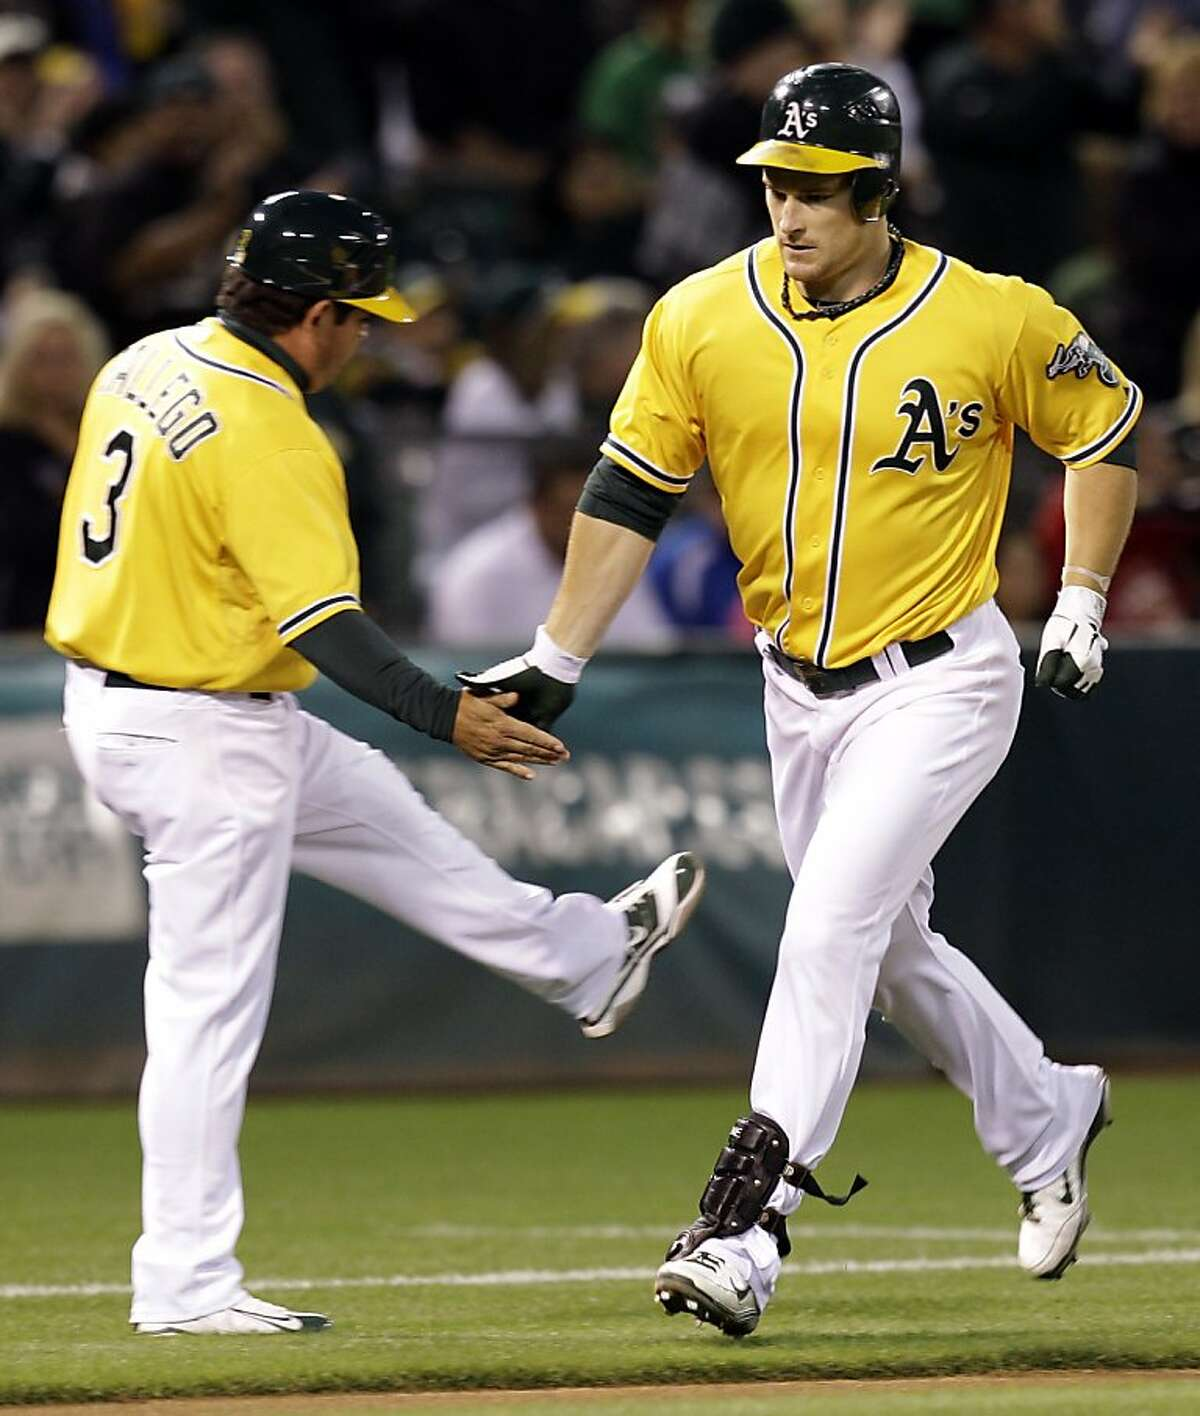 Oakland Athletics' Josh Willingham, right, is congratulated by third base coach Mike Gallego after hitting a home run off Detroit Tigers' Doug Fister during the second inning of a baseball game on Friday, Sept. 16, 2011, in Oakland, Calif. (AP Photo/Ben Margot)